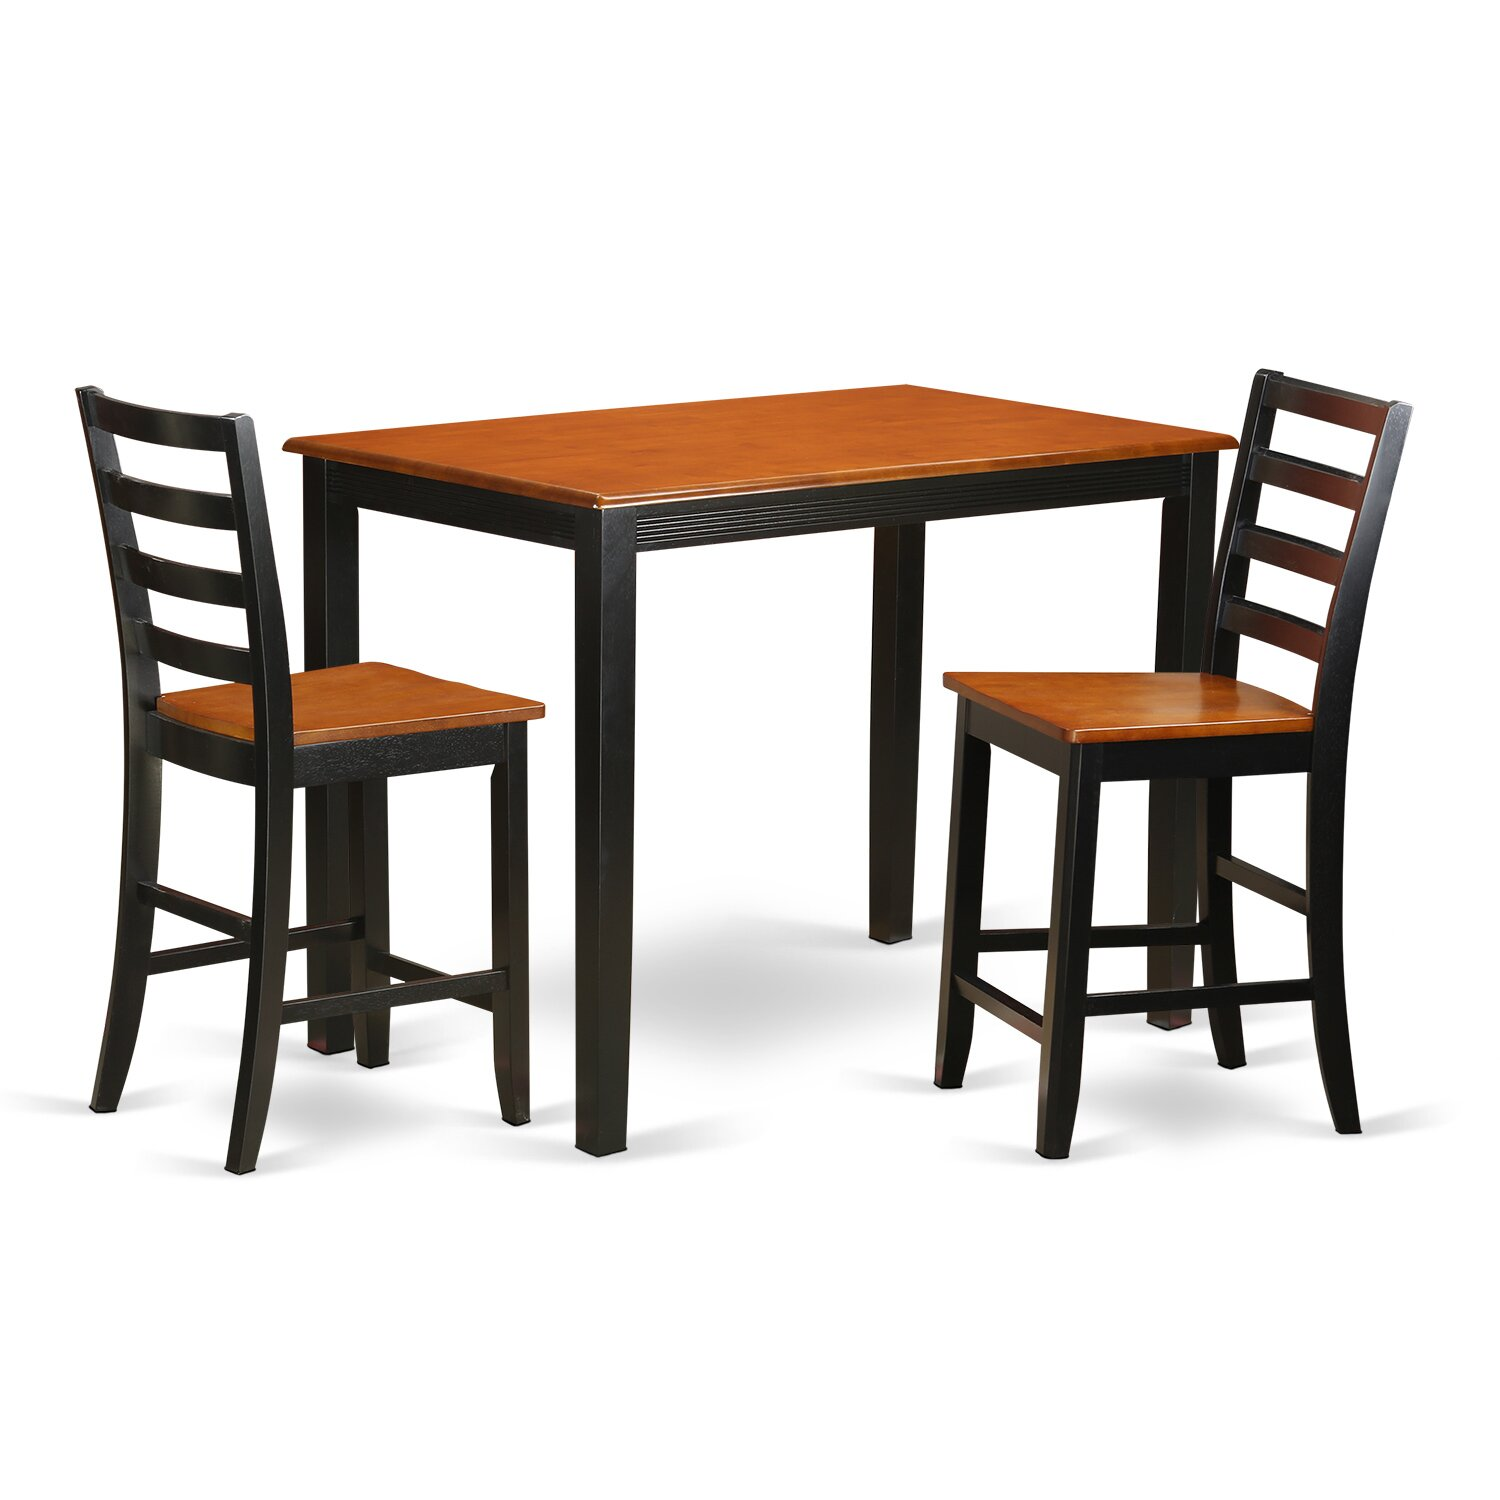 Wooden importers yarmouth 3 piece counter height pub table set wayfair - Rectangle kitchen table sets ...